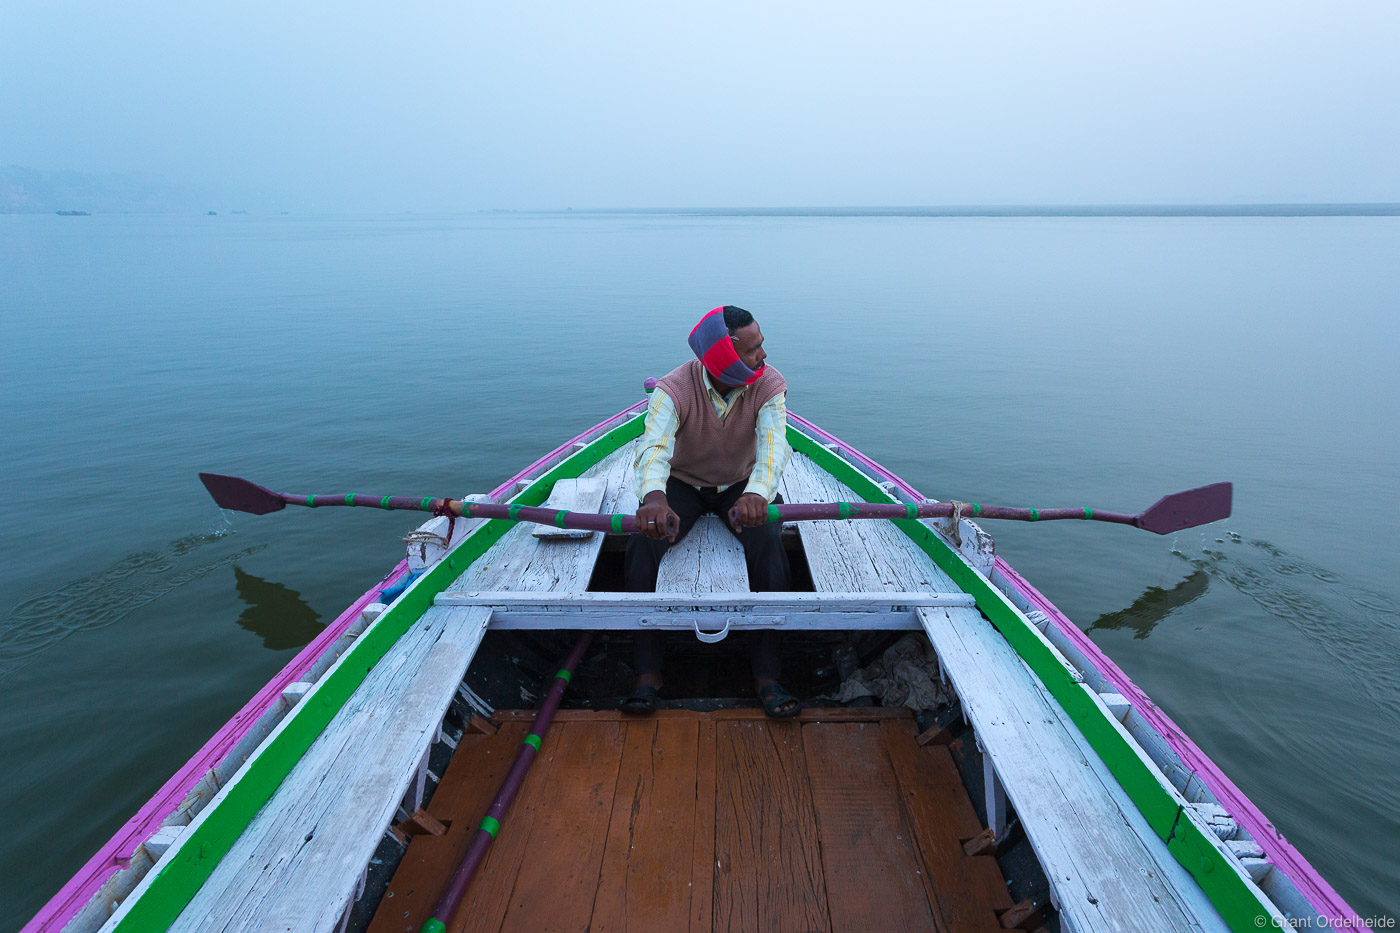 A man rows a boat on the holy Ganges River early on a foggy morning.